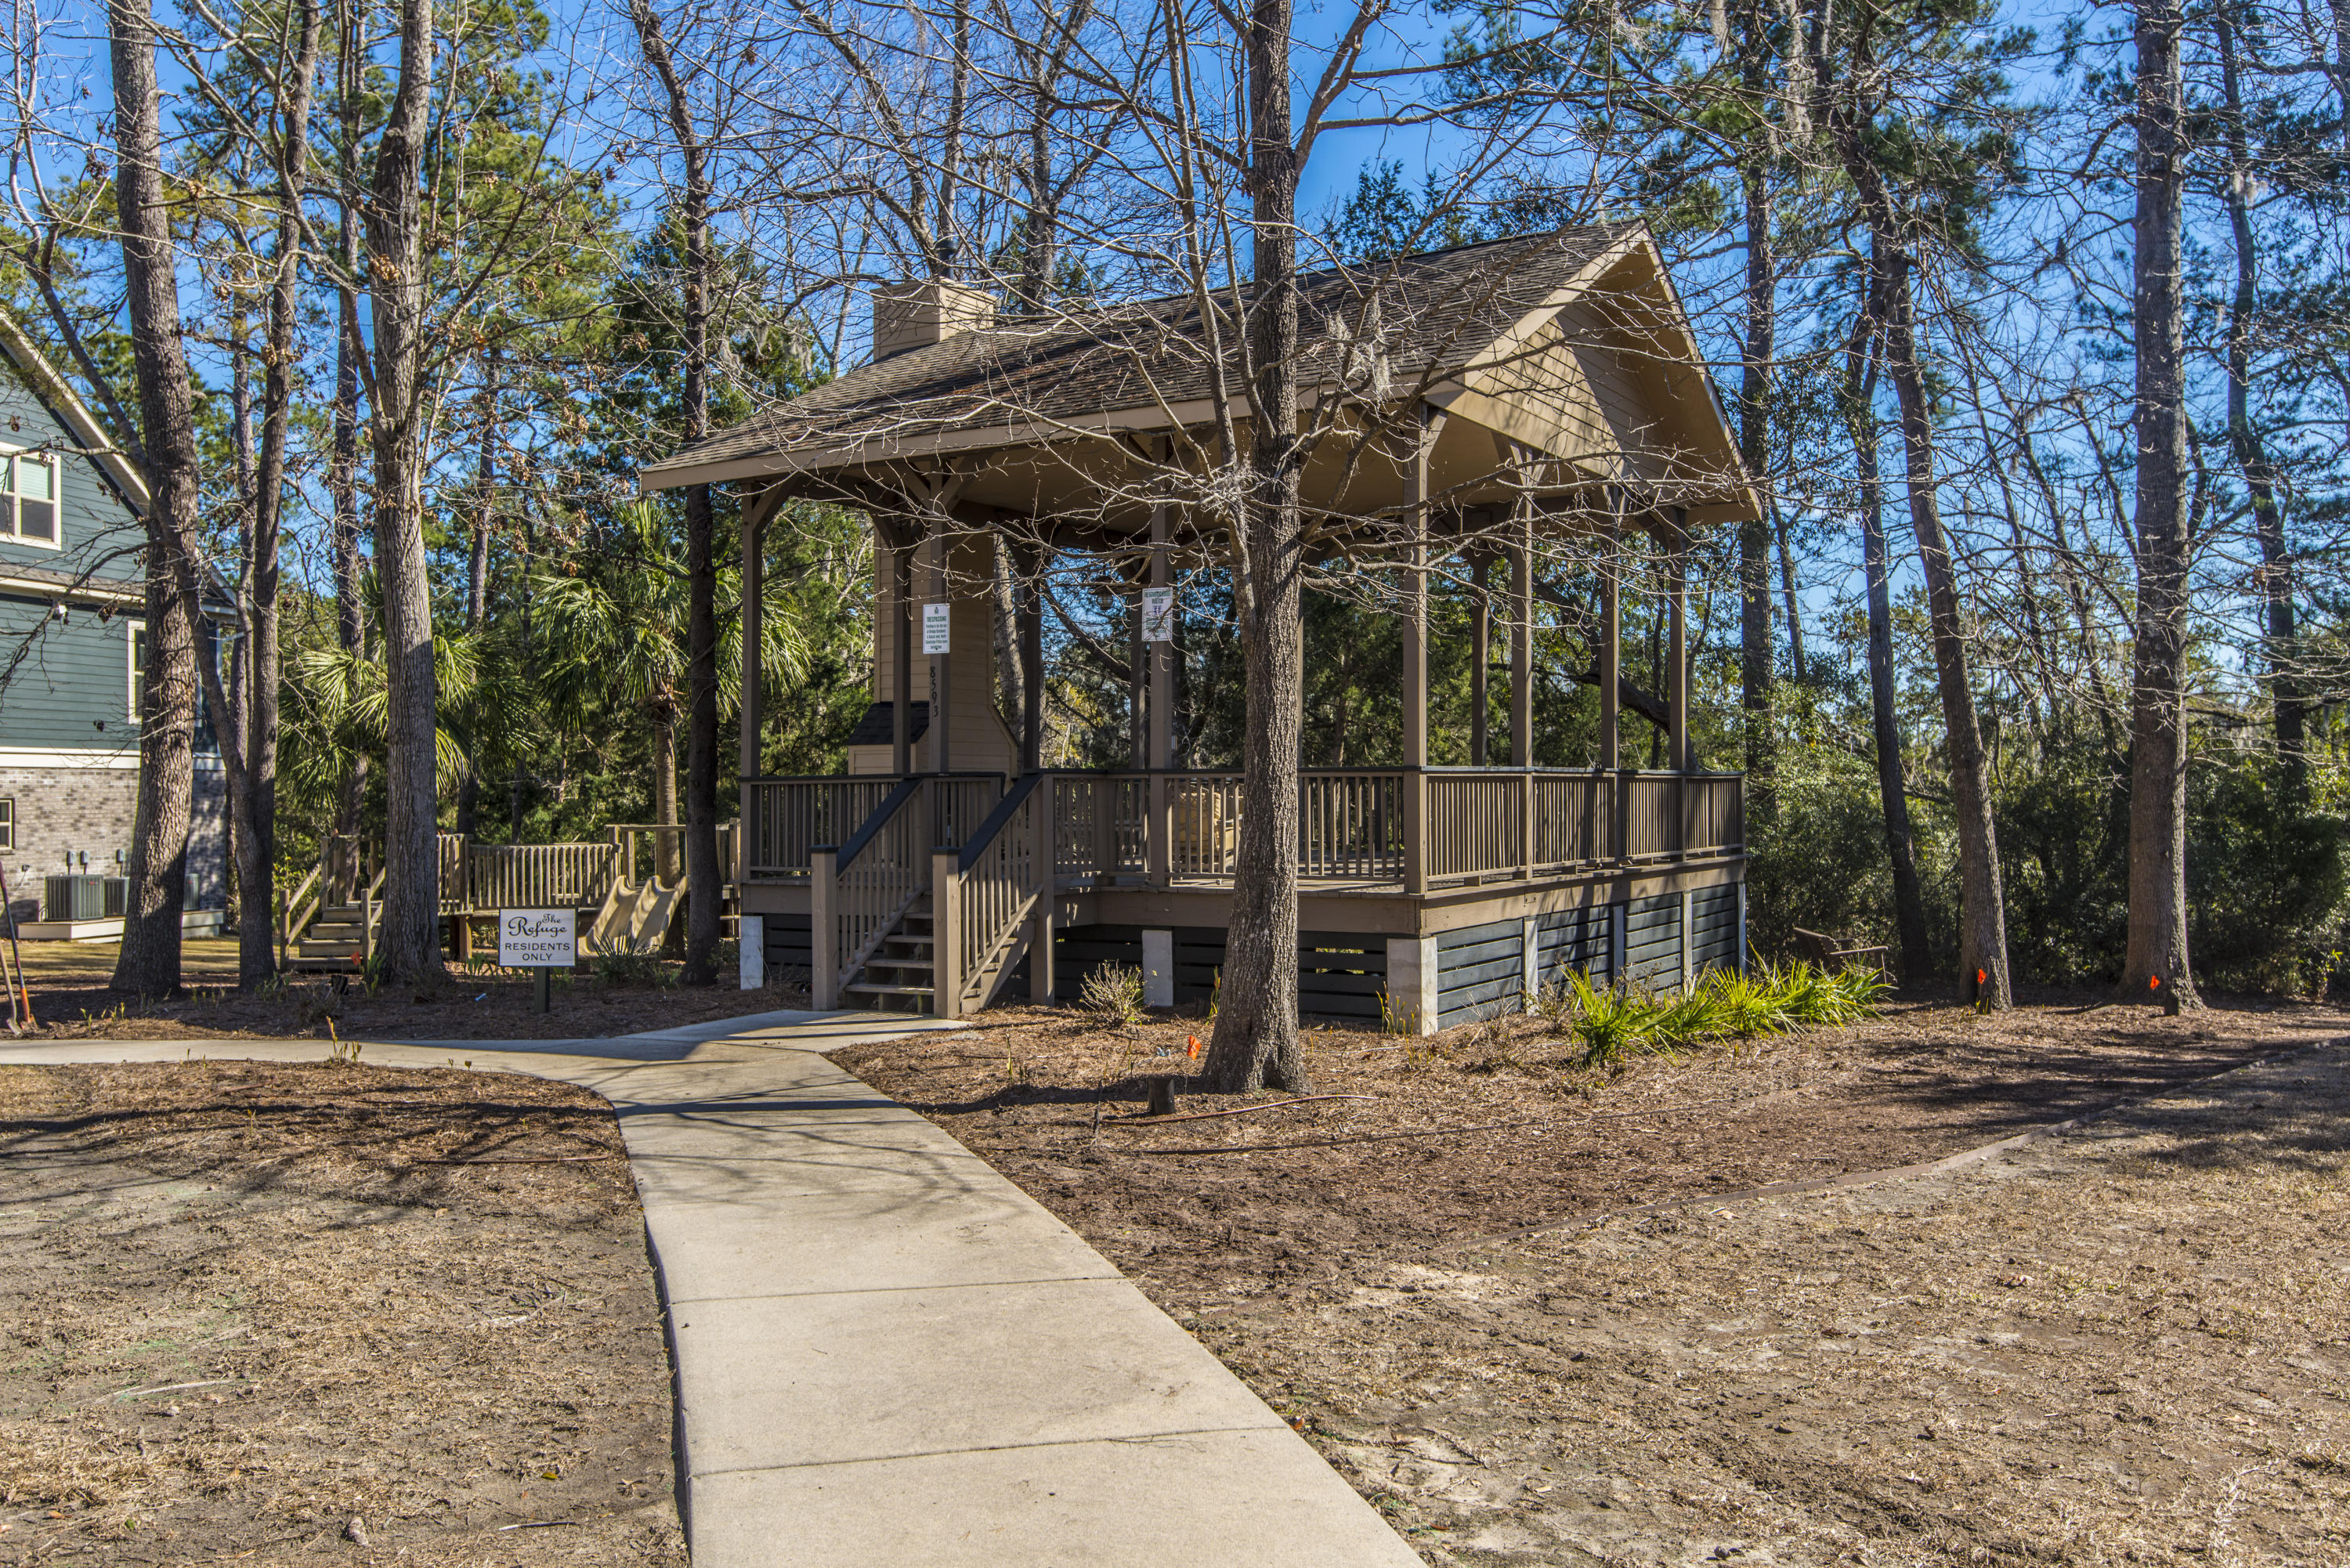 Photo of 8594 Refuge Pointe Cir, North Charleston, SC 29420